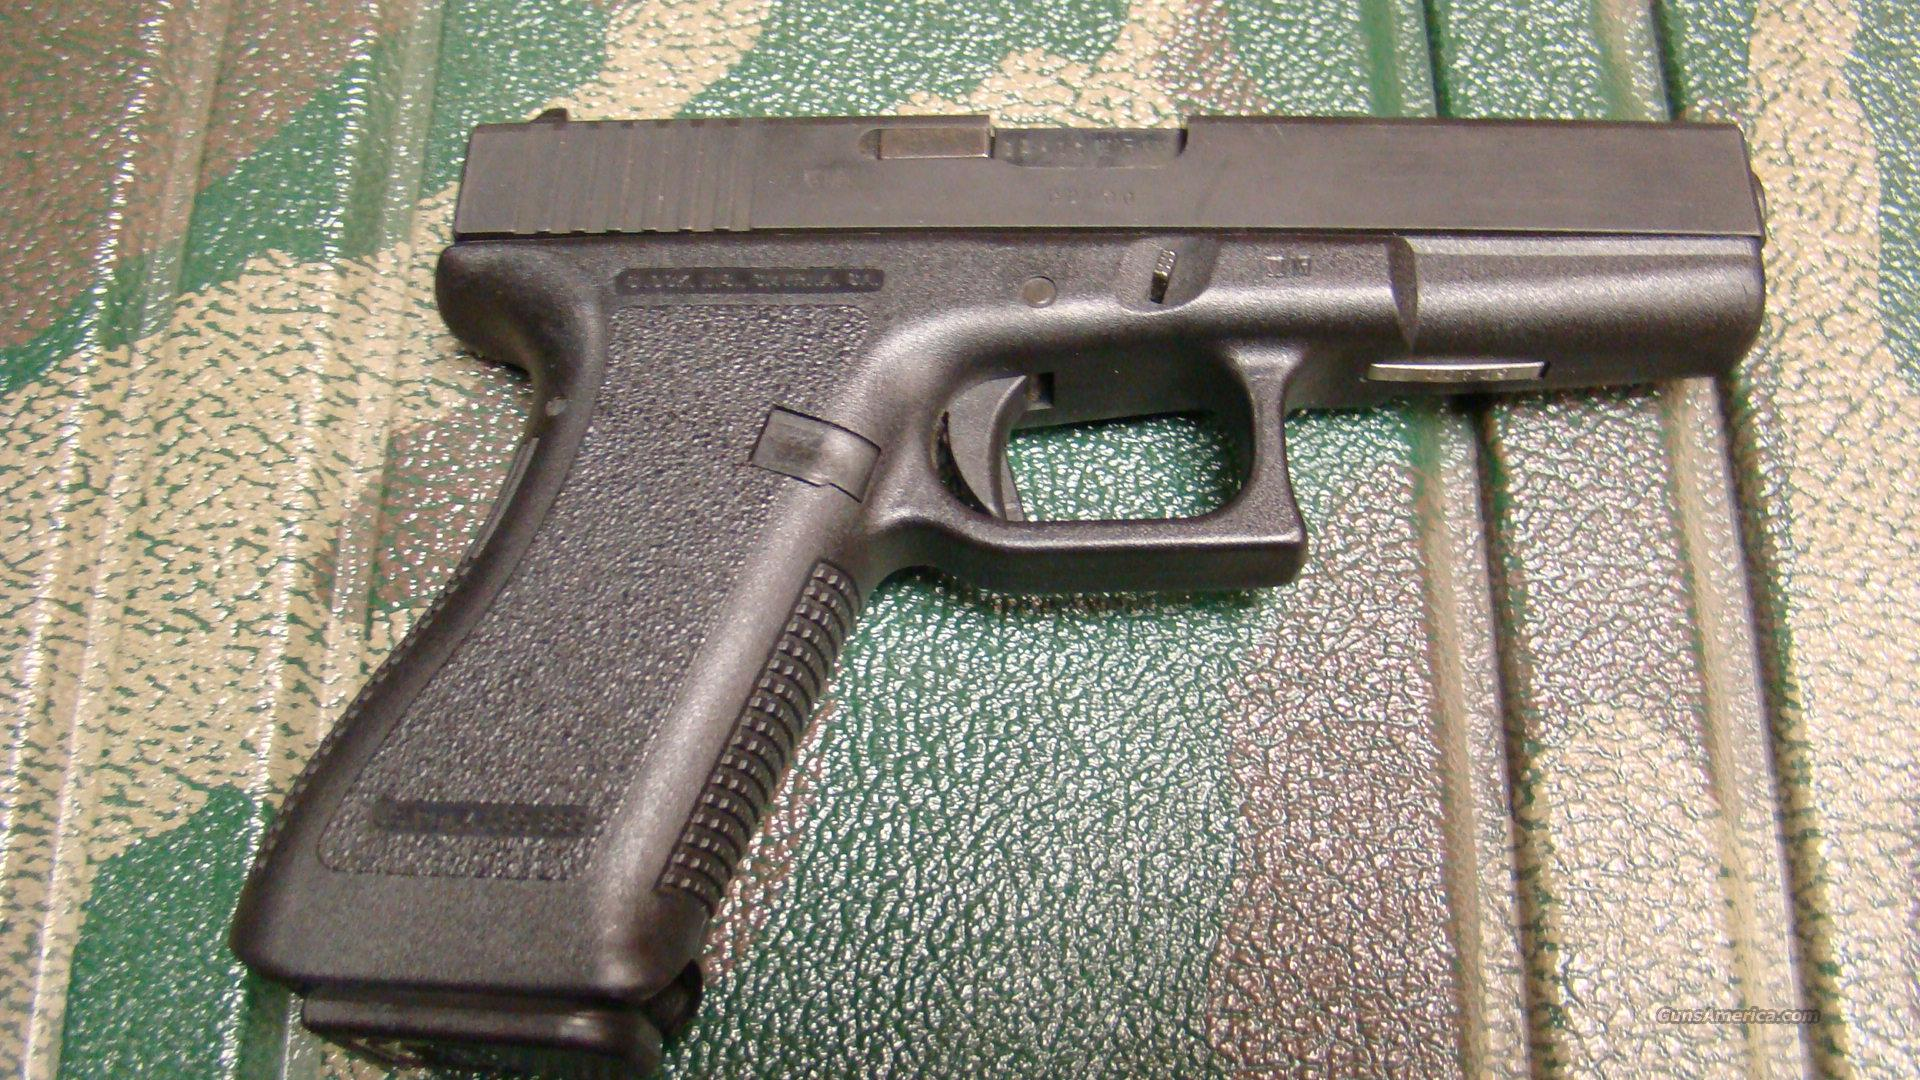 GLOCK 17 9MM EARLY MODEL MINT $$ CHEAP $$  Guns > Pistols > Glock Pistols > 17